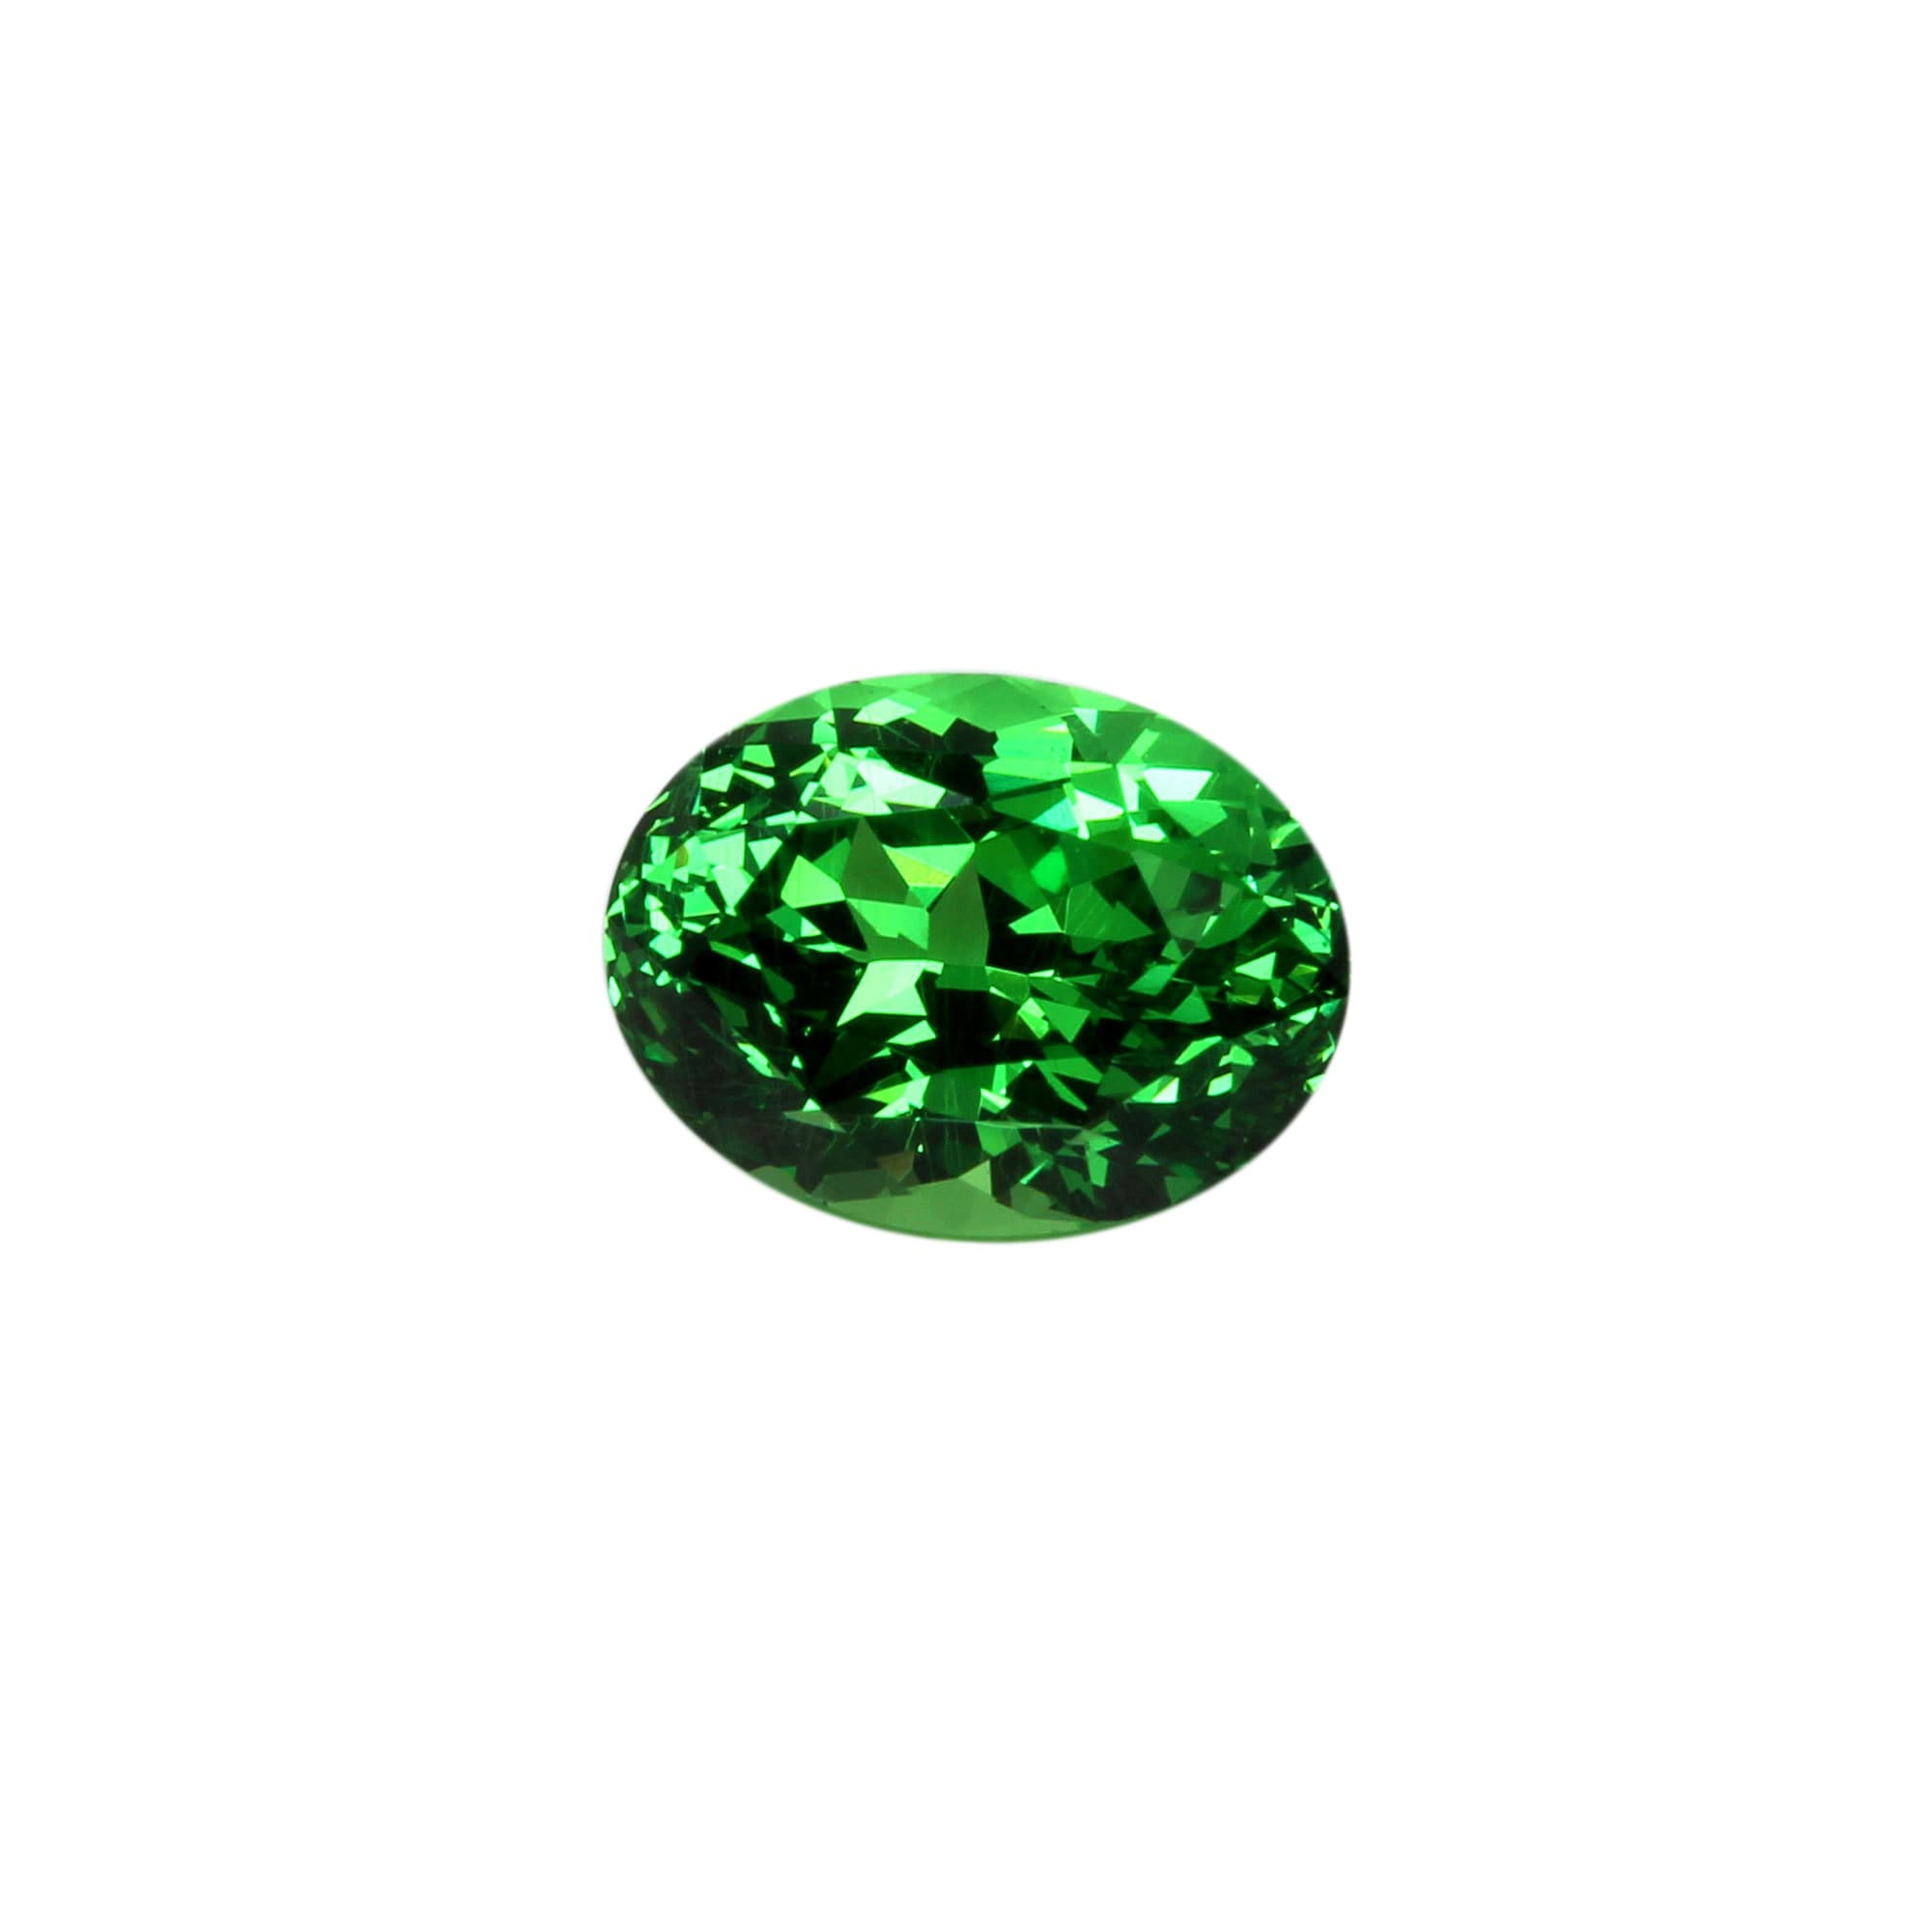 s earth tsavorite garnet green gemstone carat rich treasury product